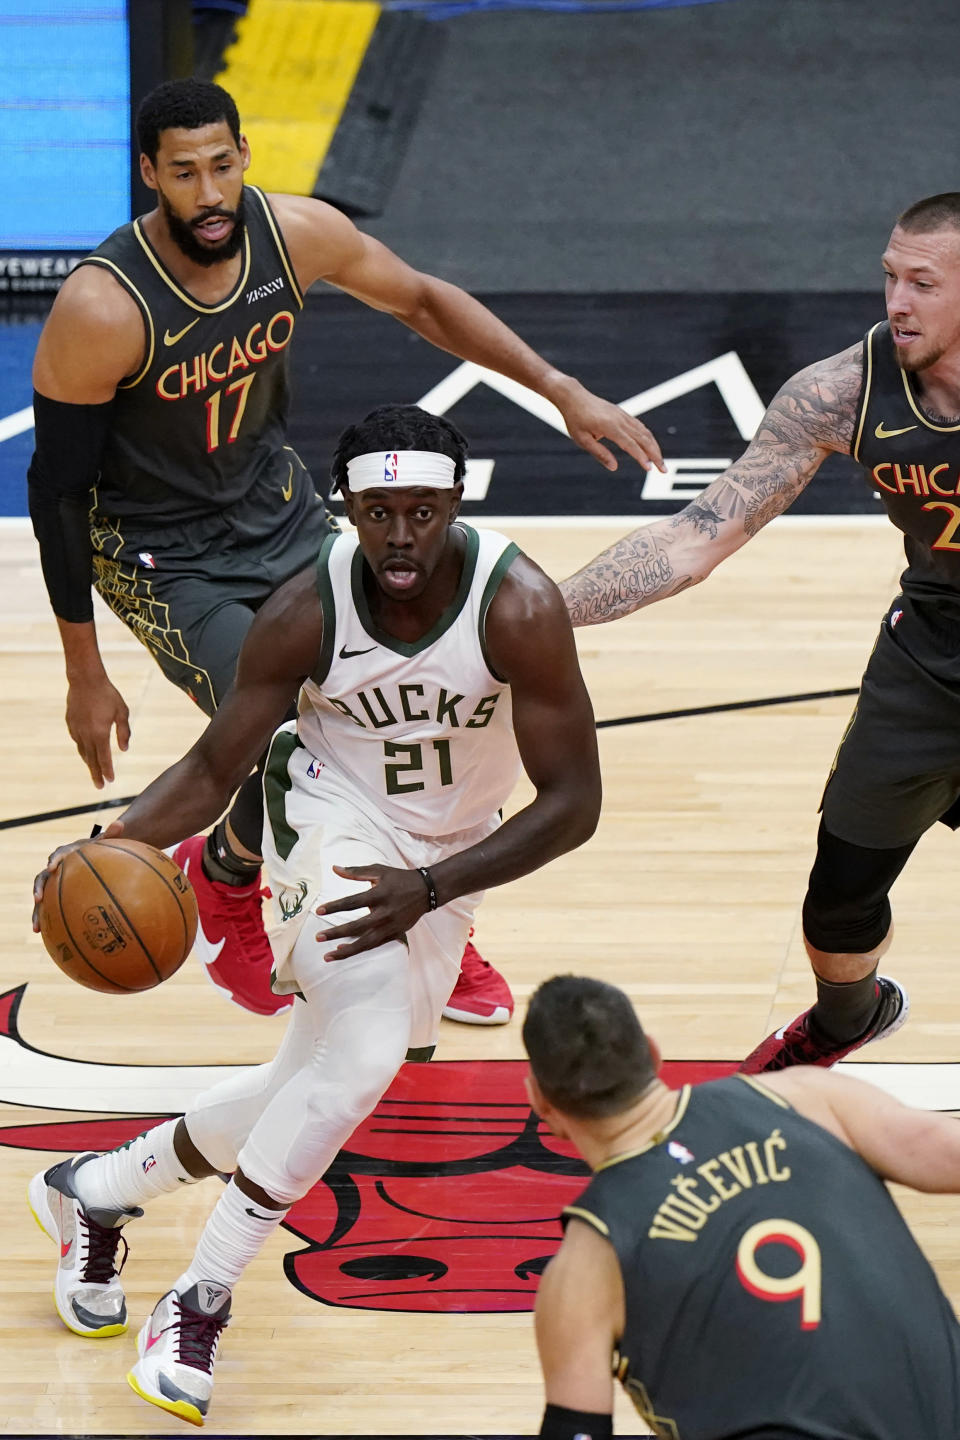 Milwaukee Bucks guard Jrue Holiday (21) drives against Chicago Bulls forward Garrett Temple (17), center Daniel Theis (27) and center Nikola Vucevic (9) during the first half of an NBA basketball game in Chicago, Friday, April 30, 2021. (AP Photo/Nam Y. Huh)